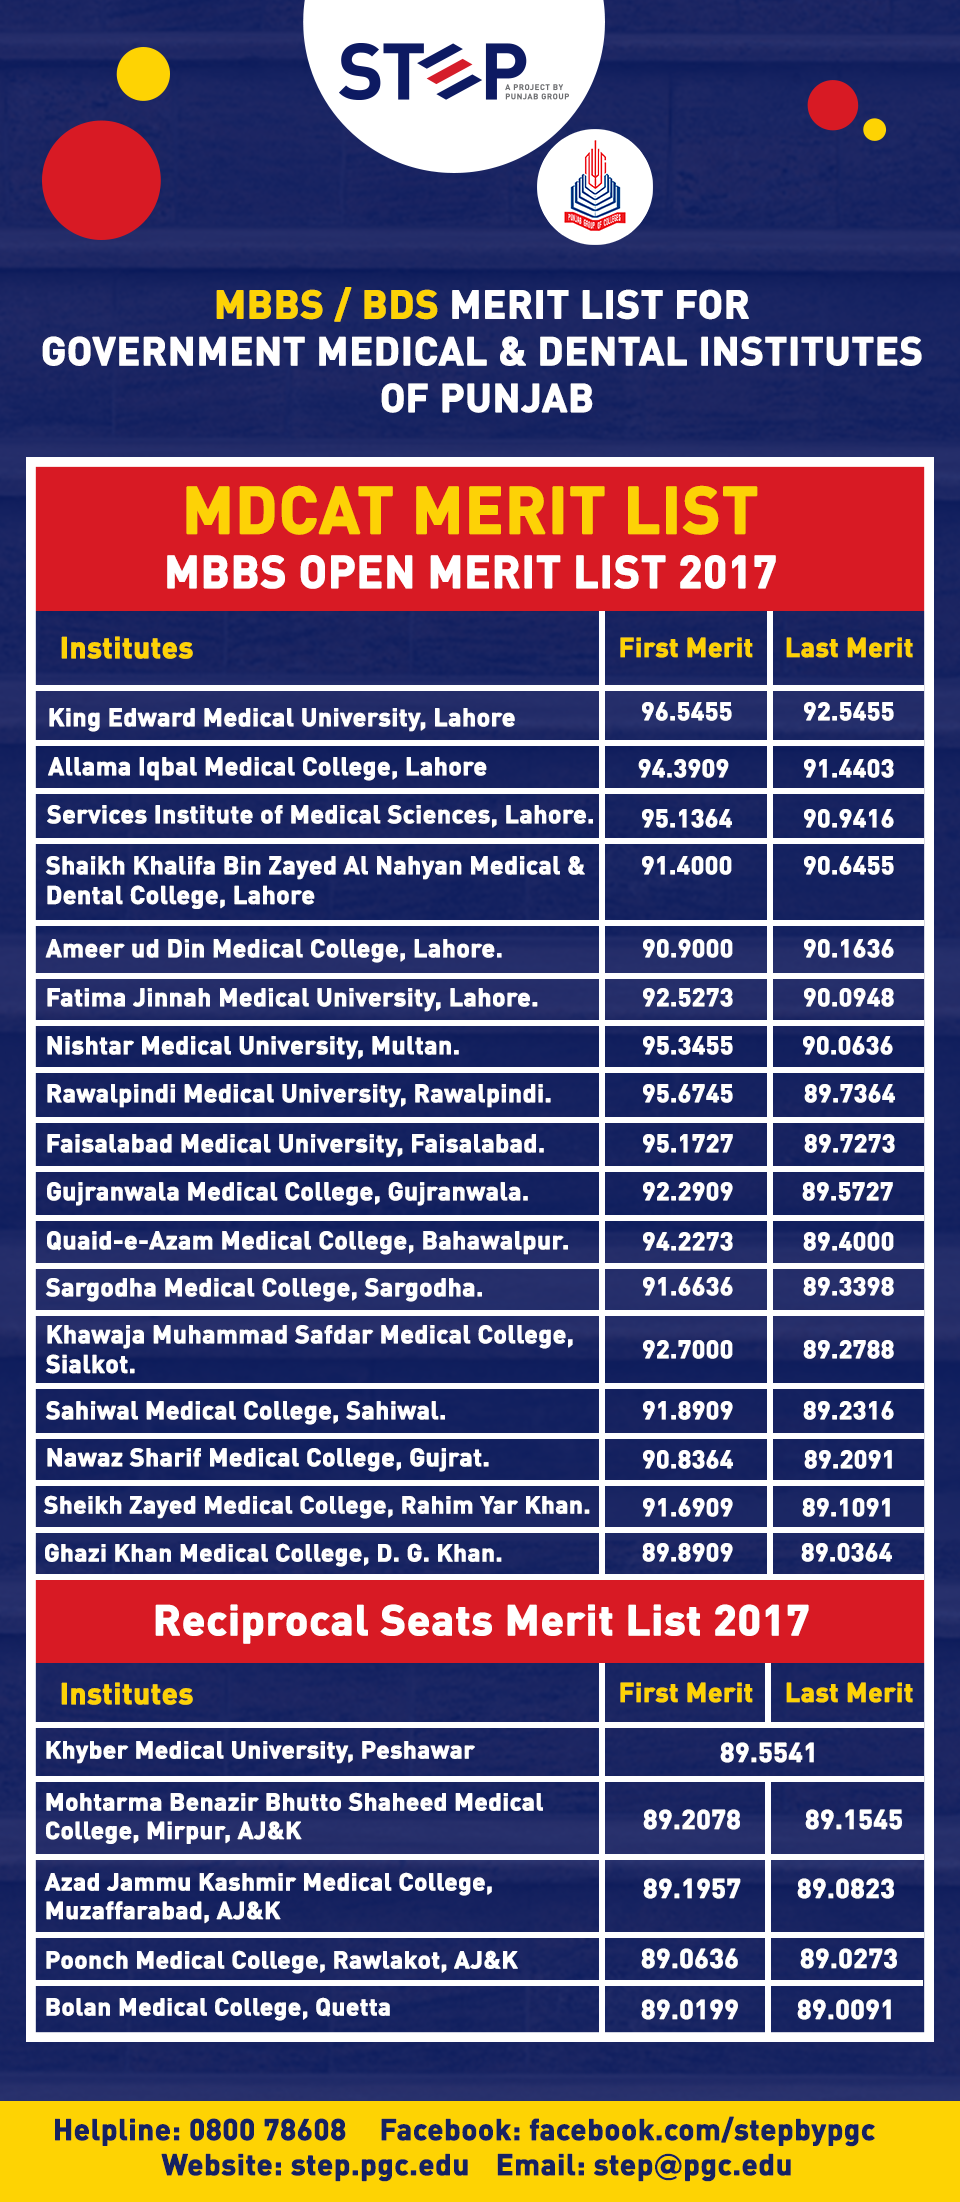 Merit & Selection lists of MBBS/BDS programs for Public Medical & Dental Institutes of Punjab 2017